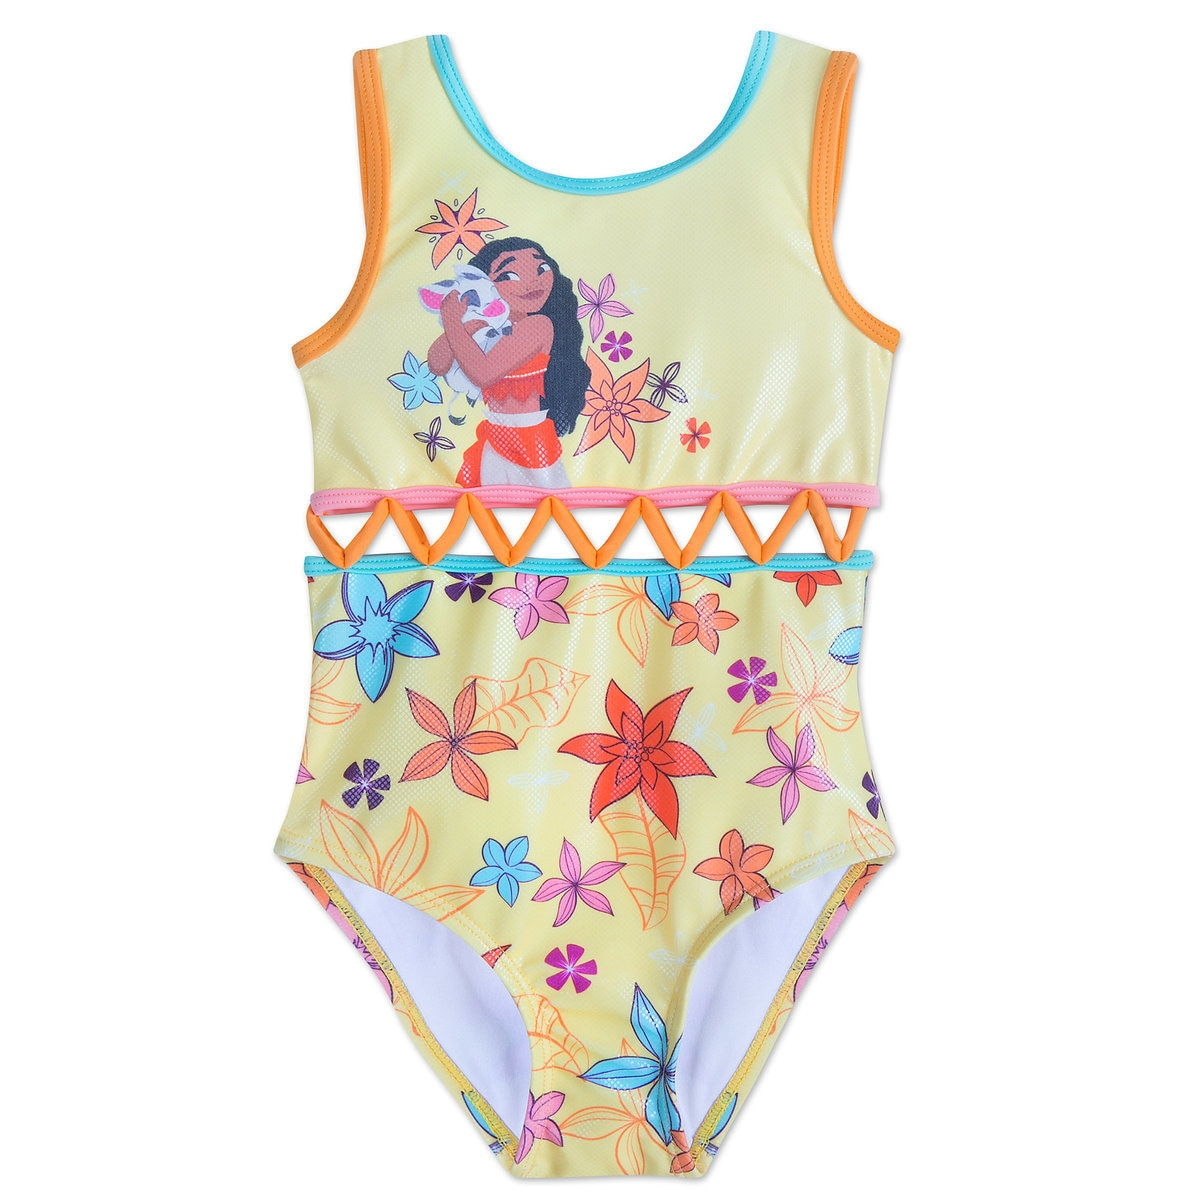 6a2053c49d38f Product Image of Moana Swimsuit for Girls # 1